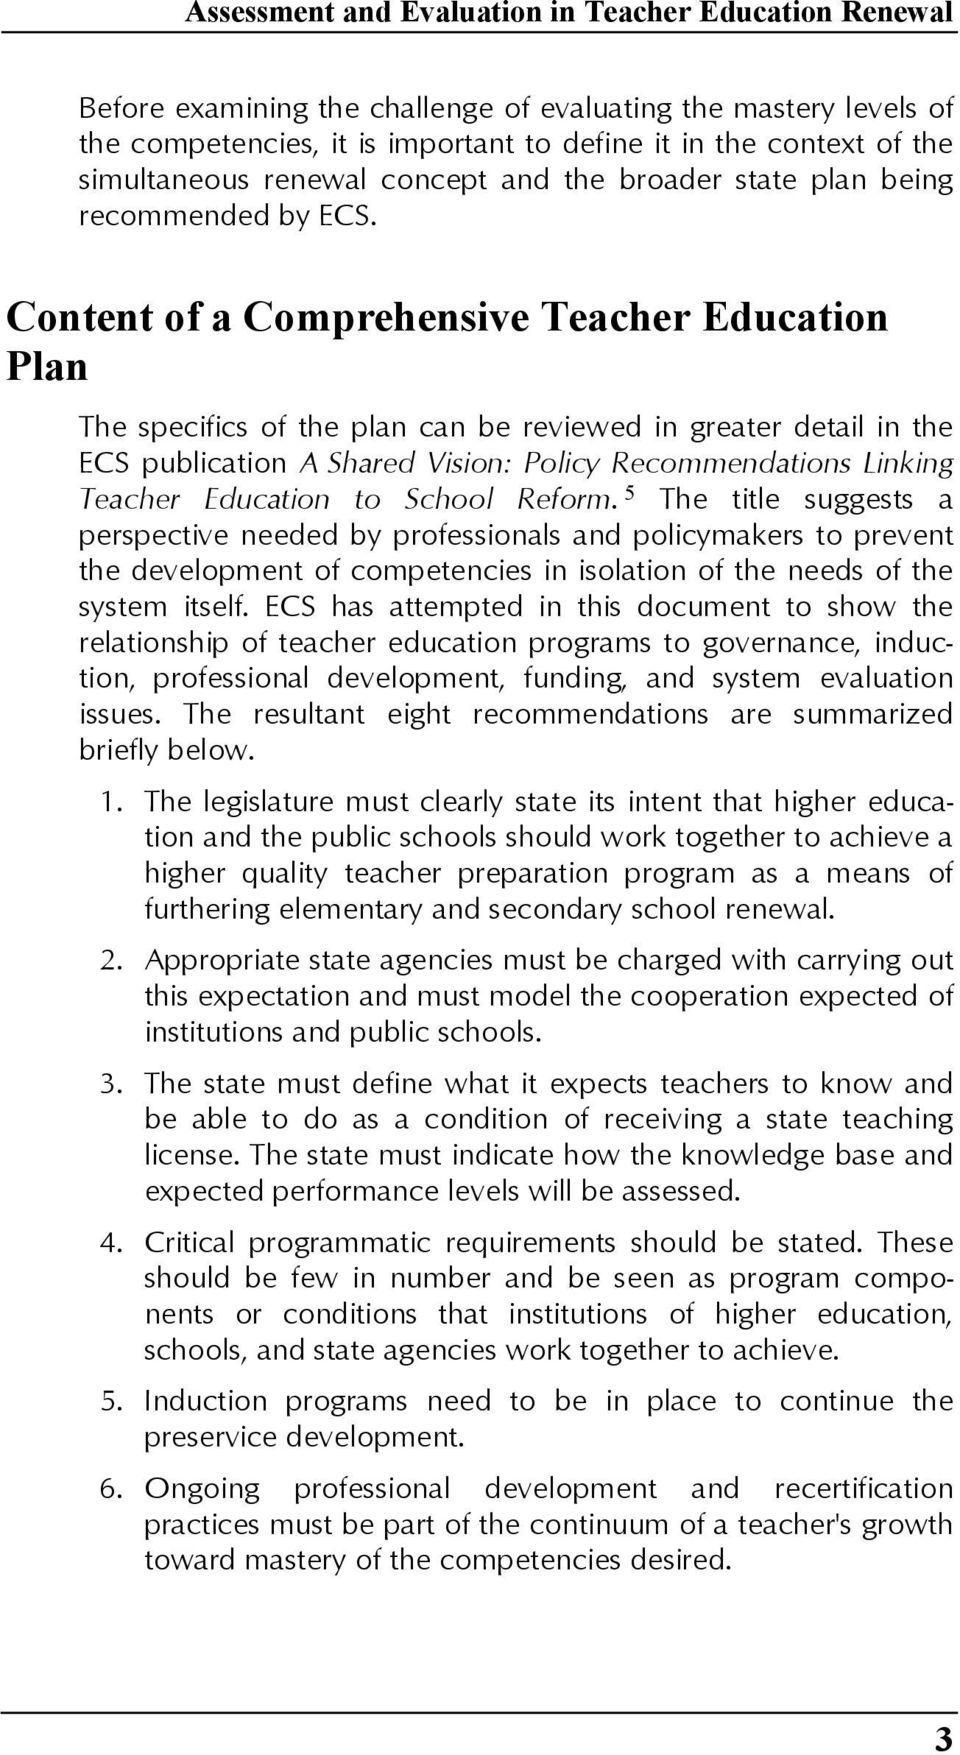 Content of a Comprehensive Teacher Education Plan The specifics of the plan can be reviewed in greater detail in the ECS publication A Shared Vision: Policy Recommendations Linking Teacher Education